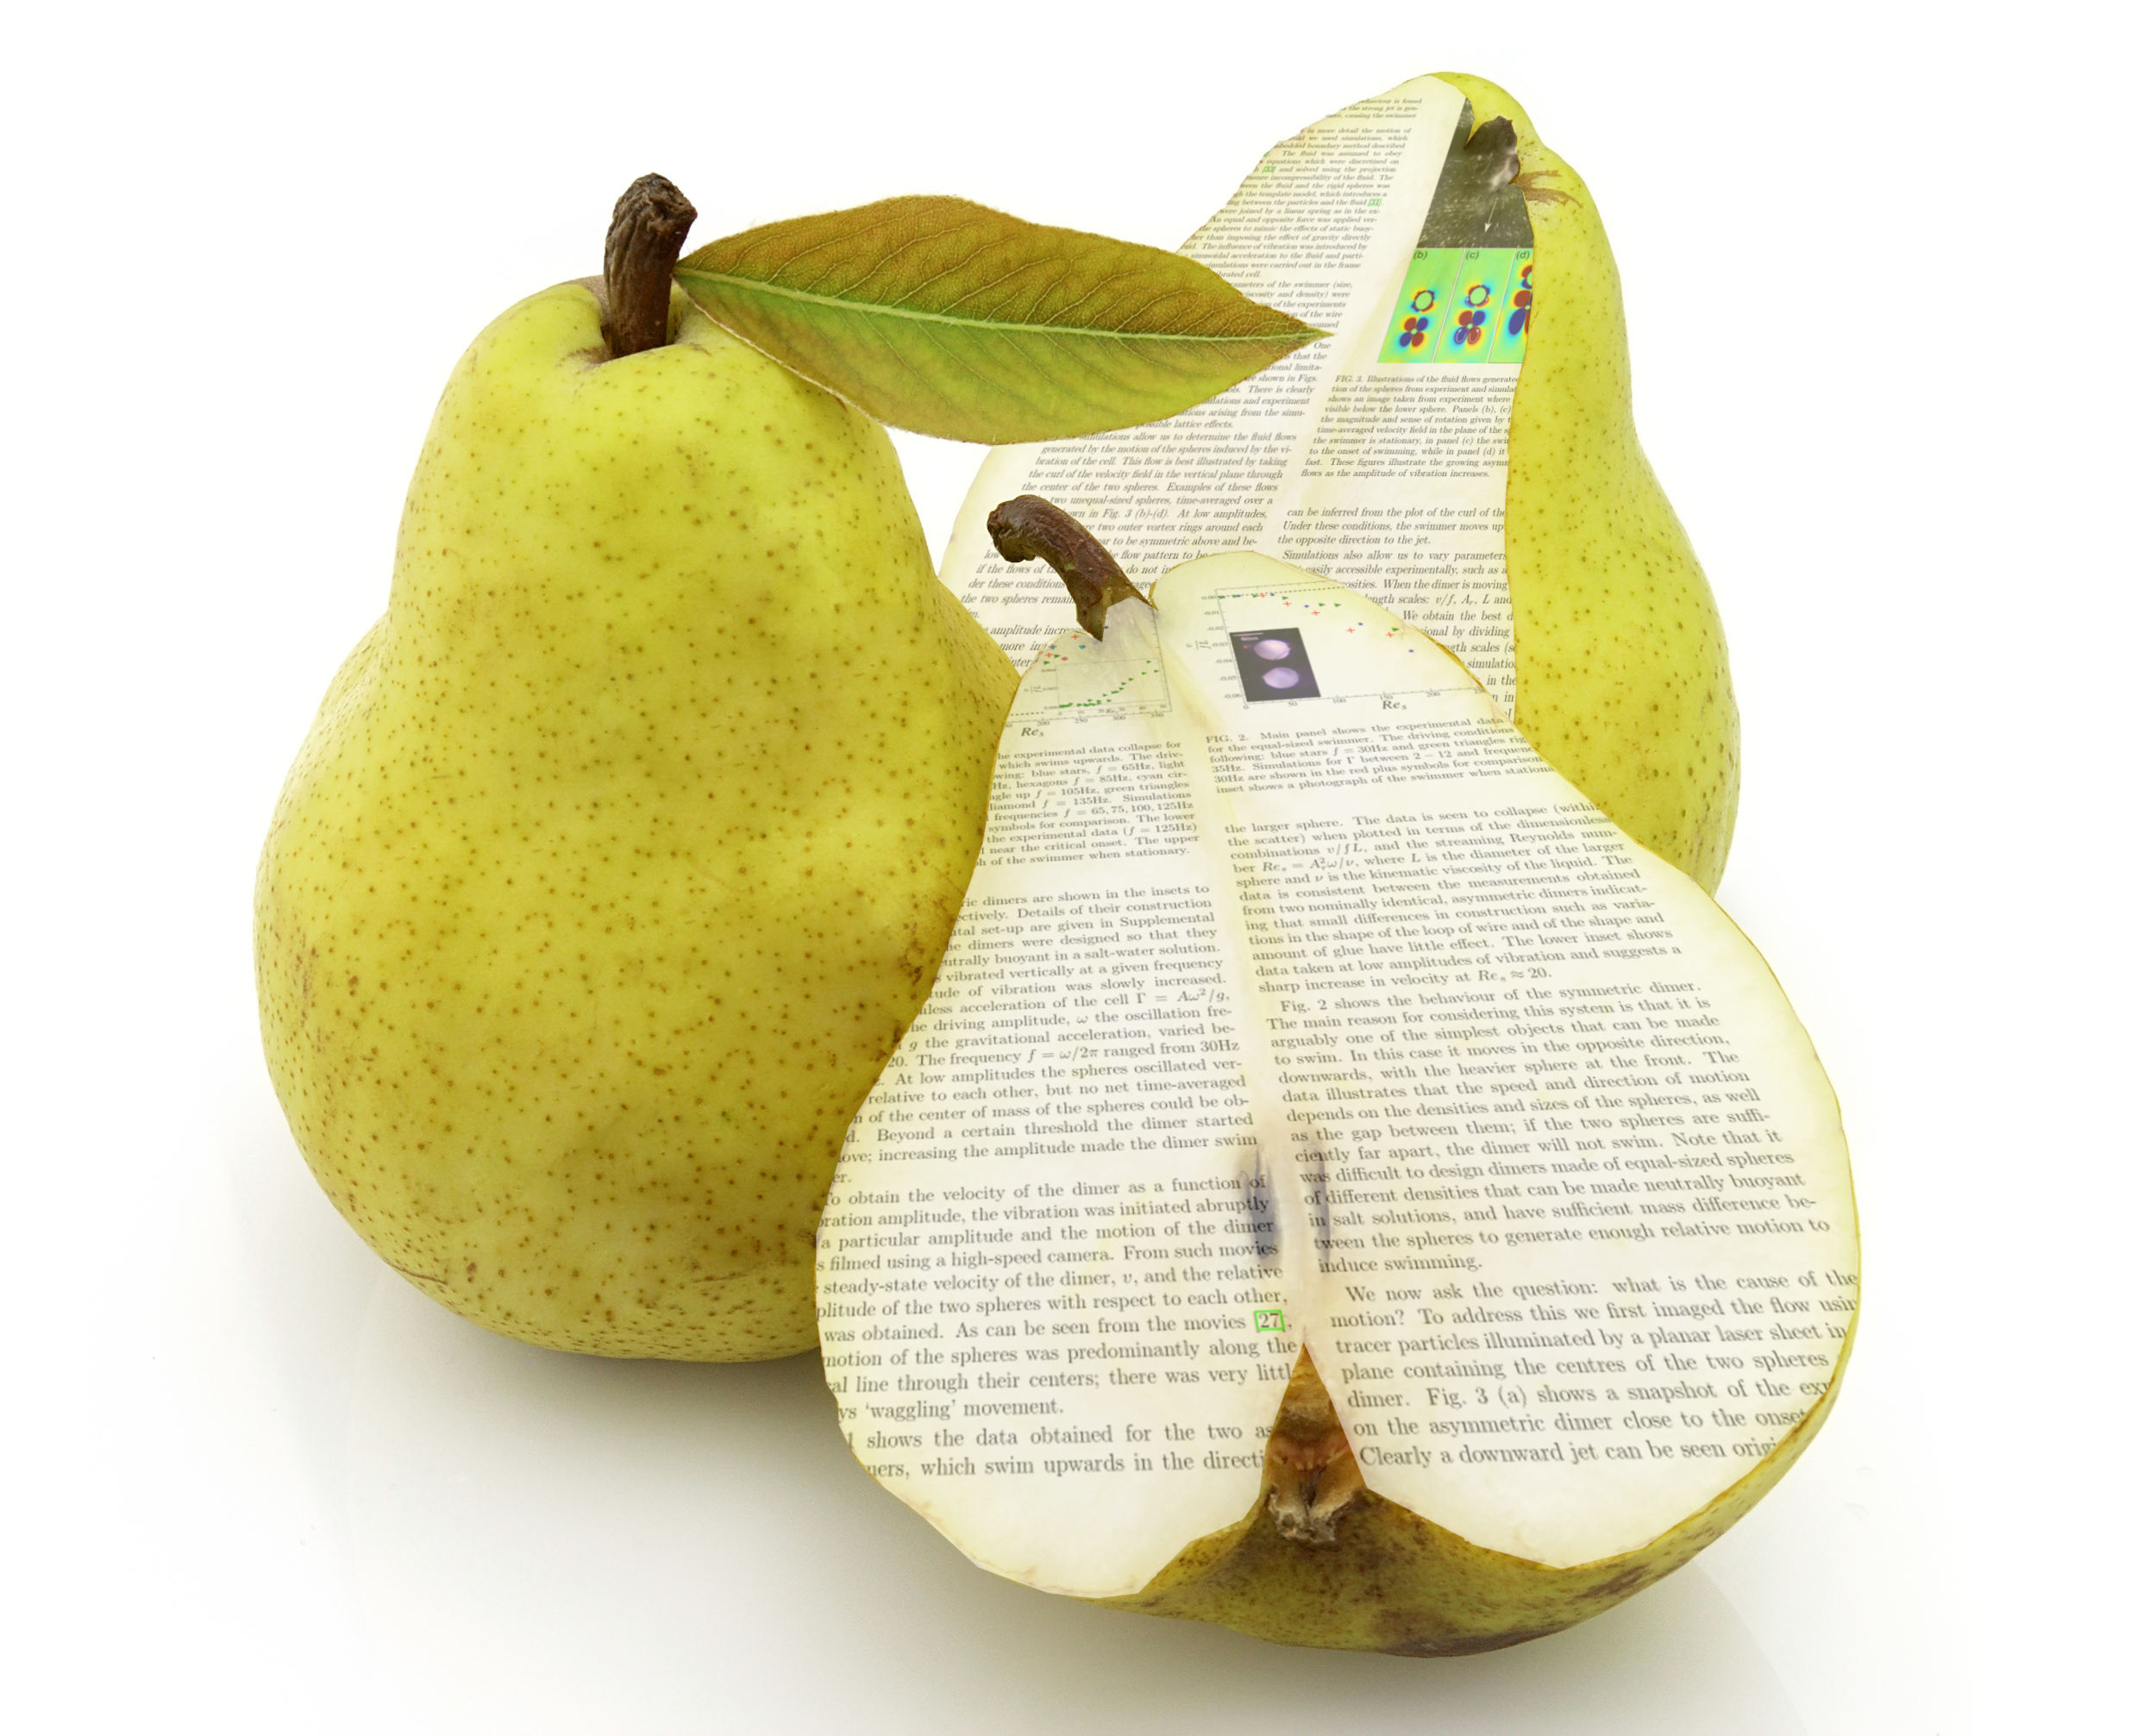 Pear-shaped peer reviewed paper, courtesy of Tom Moore Photographics. Because everybody loves puns.